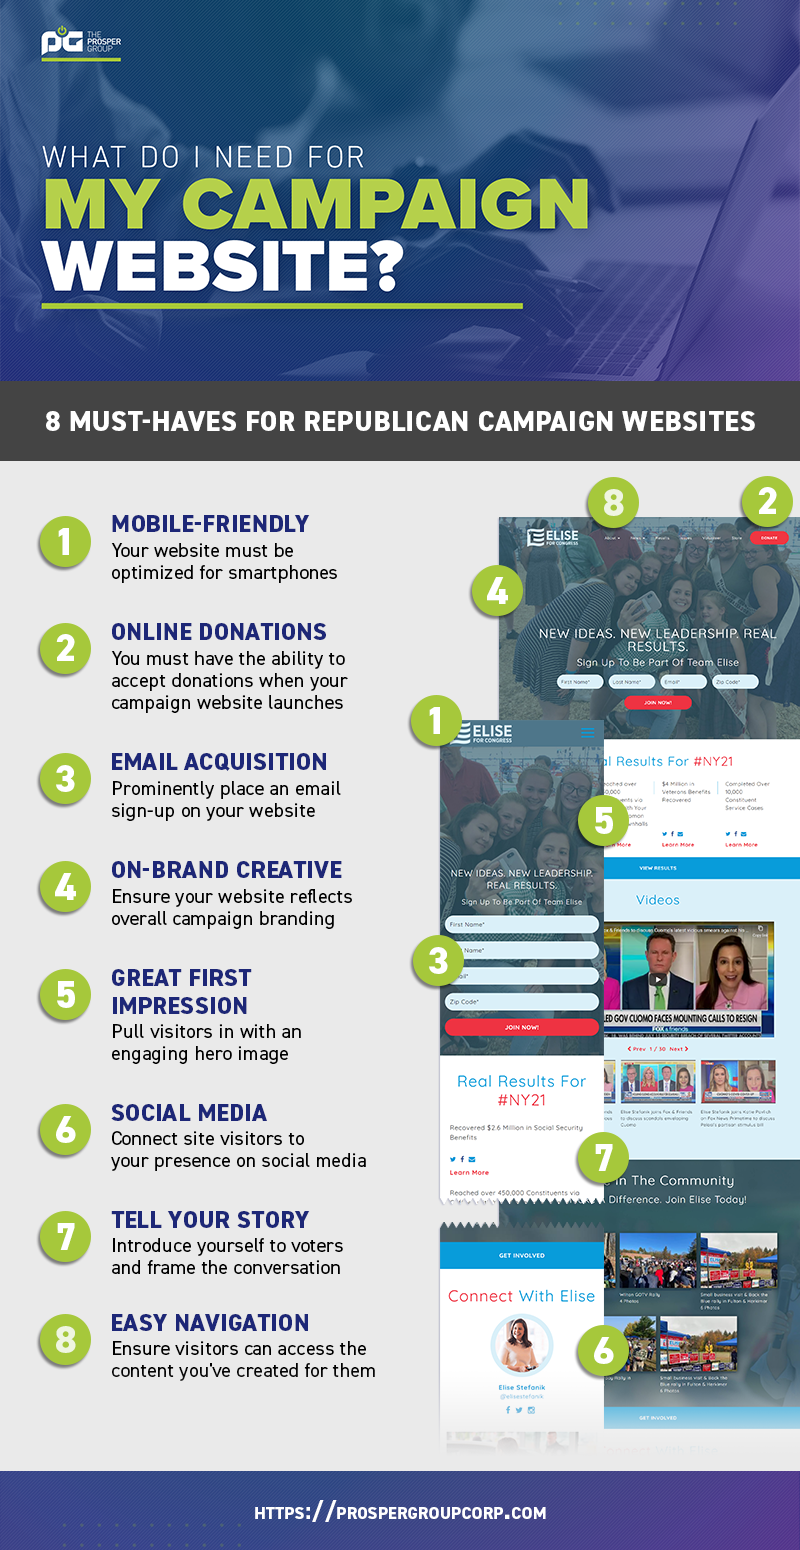 INFOGRAPHIC: 8 Must-Haves for Republican Campaign Websites